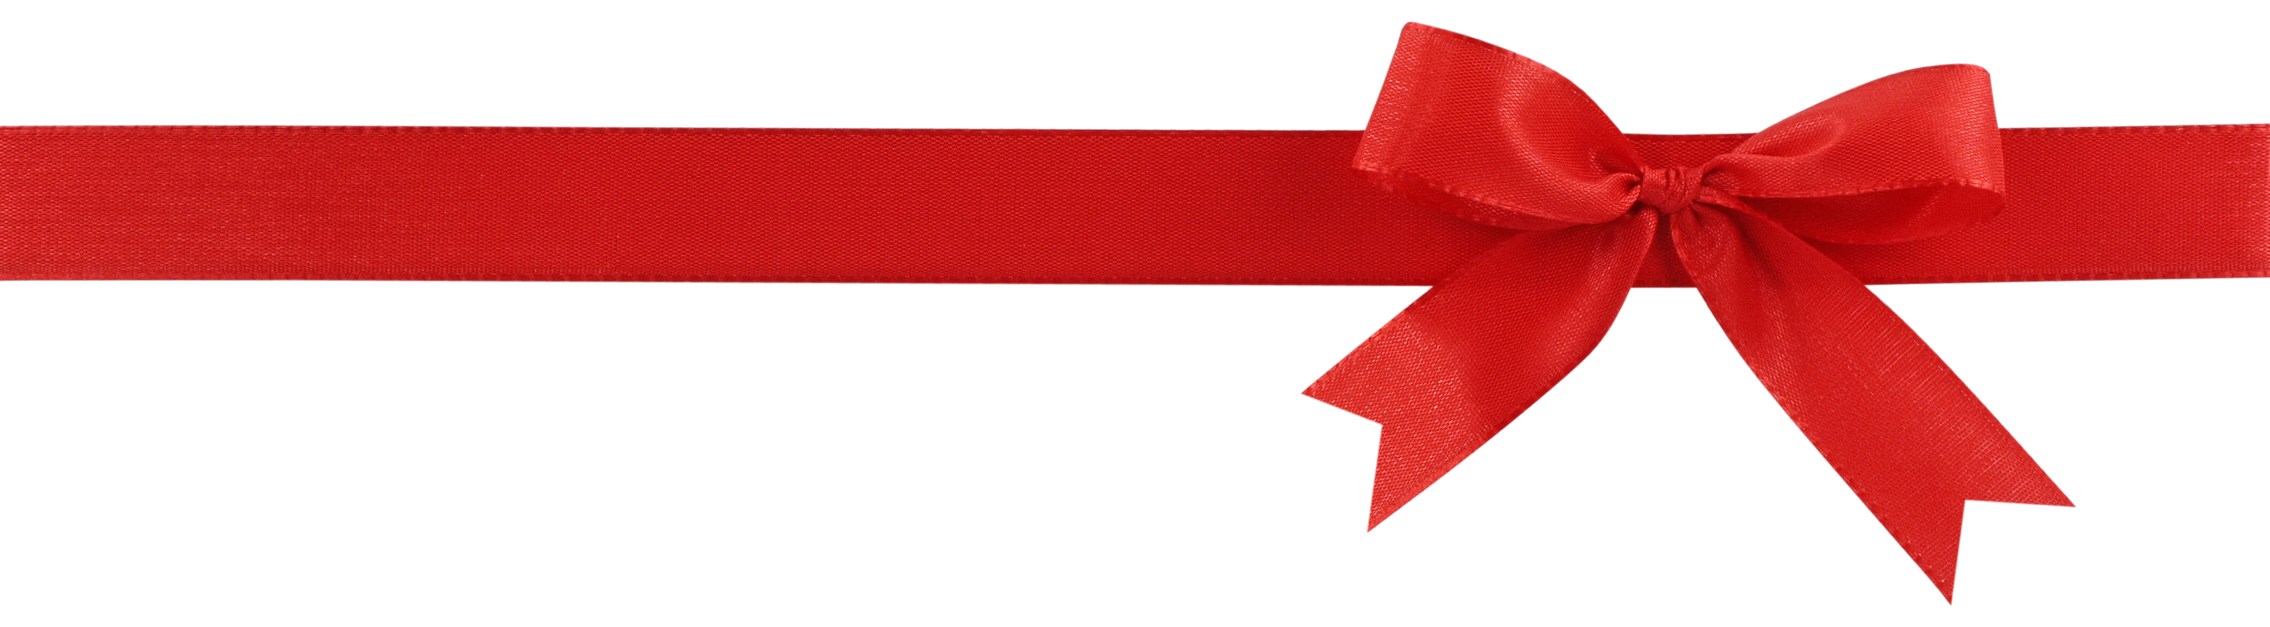 Banner Bow PNG Transparent